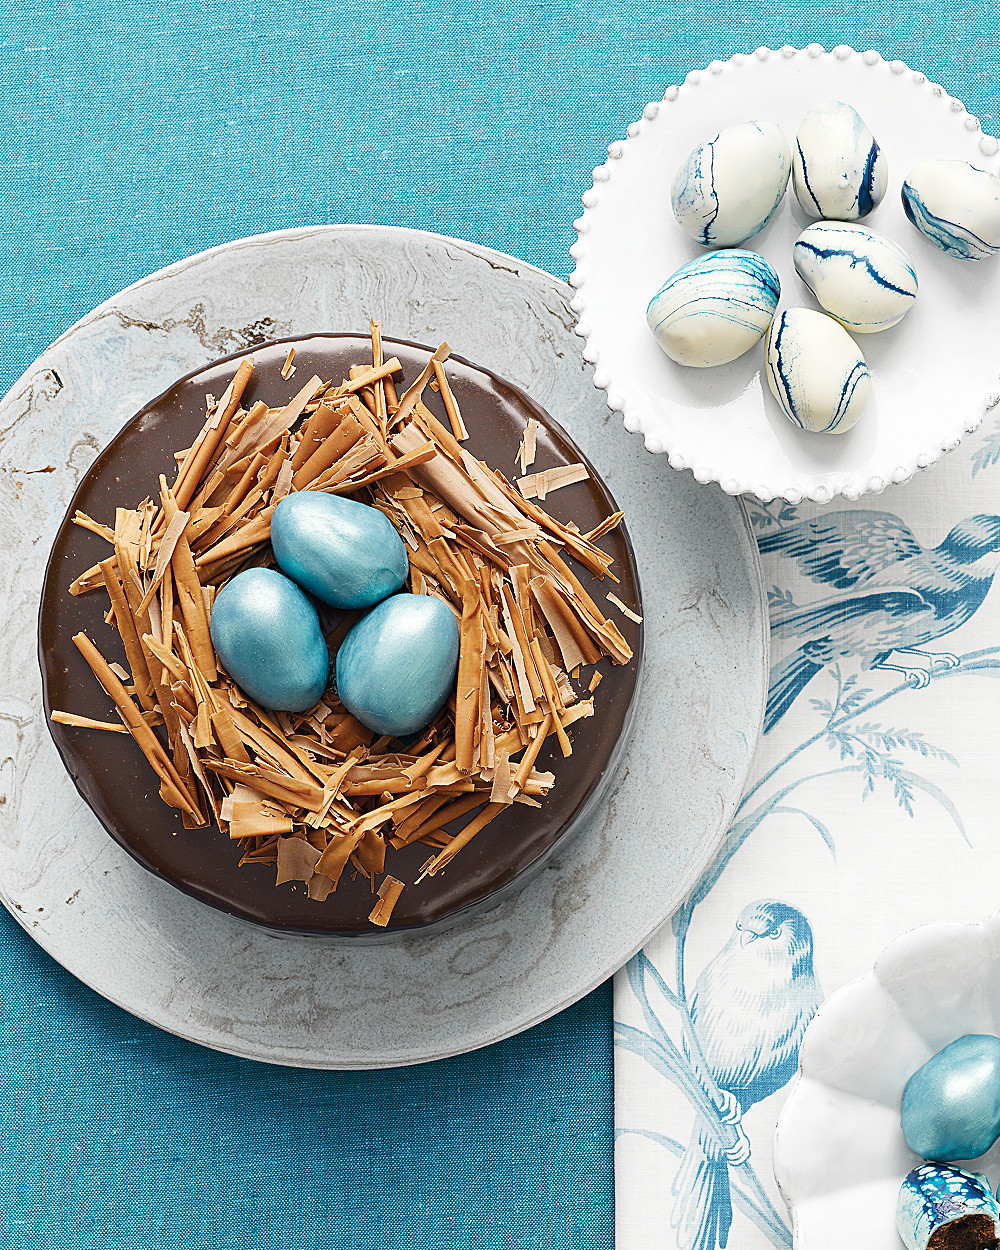 Looking for Easter Candy Ideas? Here Are 12 Sweet Treats You Can Make at Home